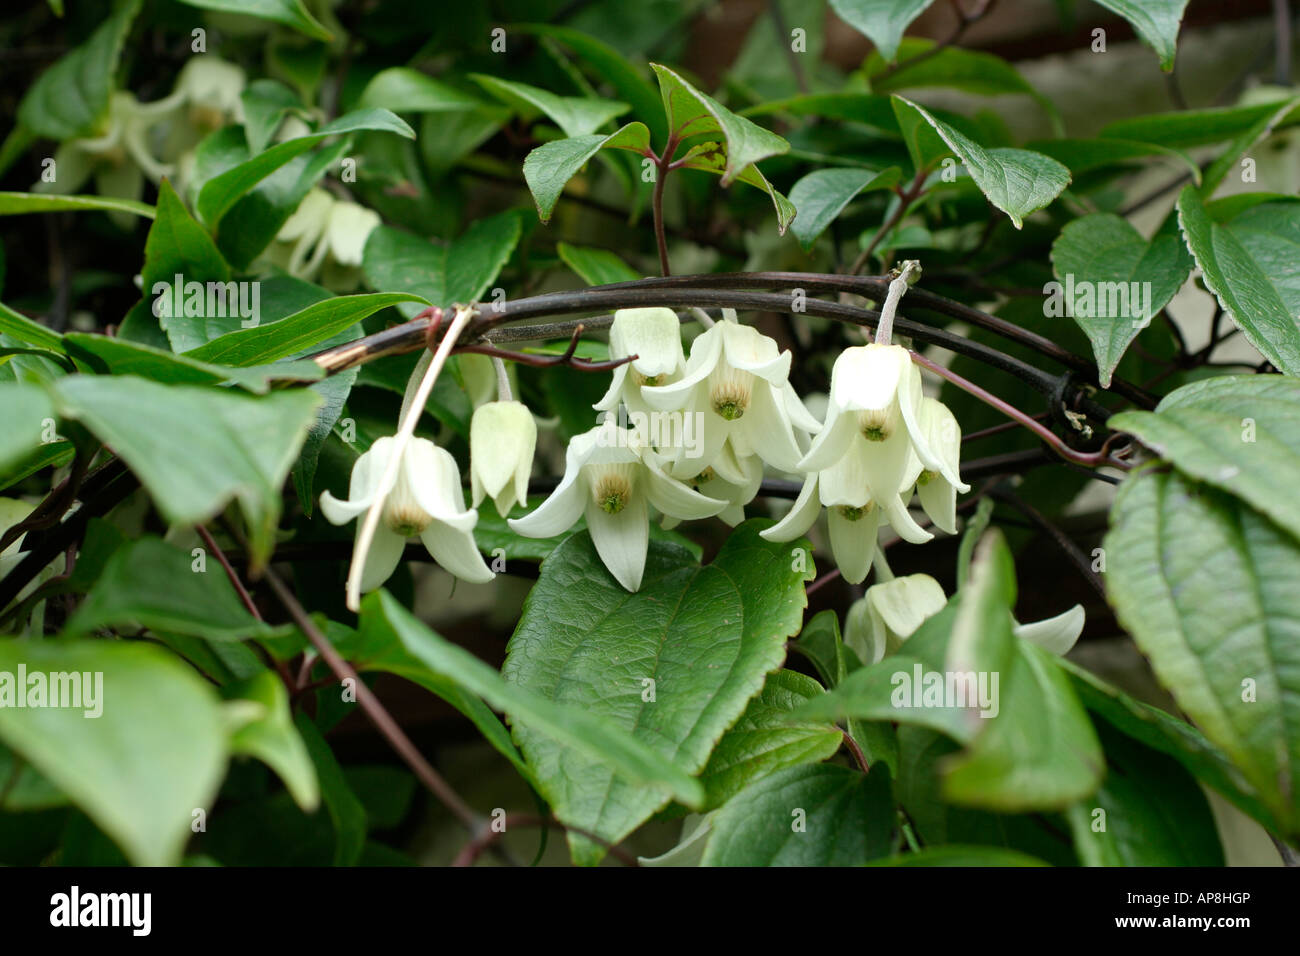 clematis urophylla winter beauty in late january stock photo royalty free image 15710997 alamy. Black Bedroom Furniture Sets. Home Design Ideas